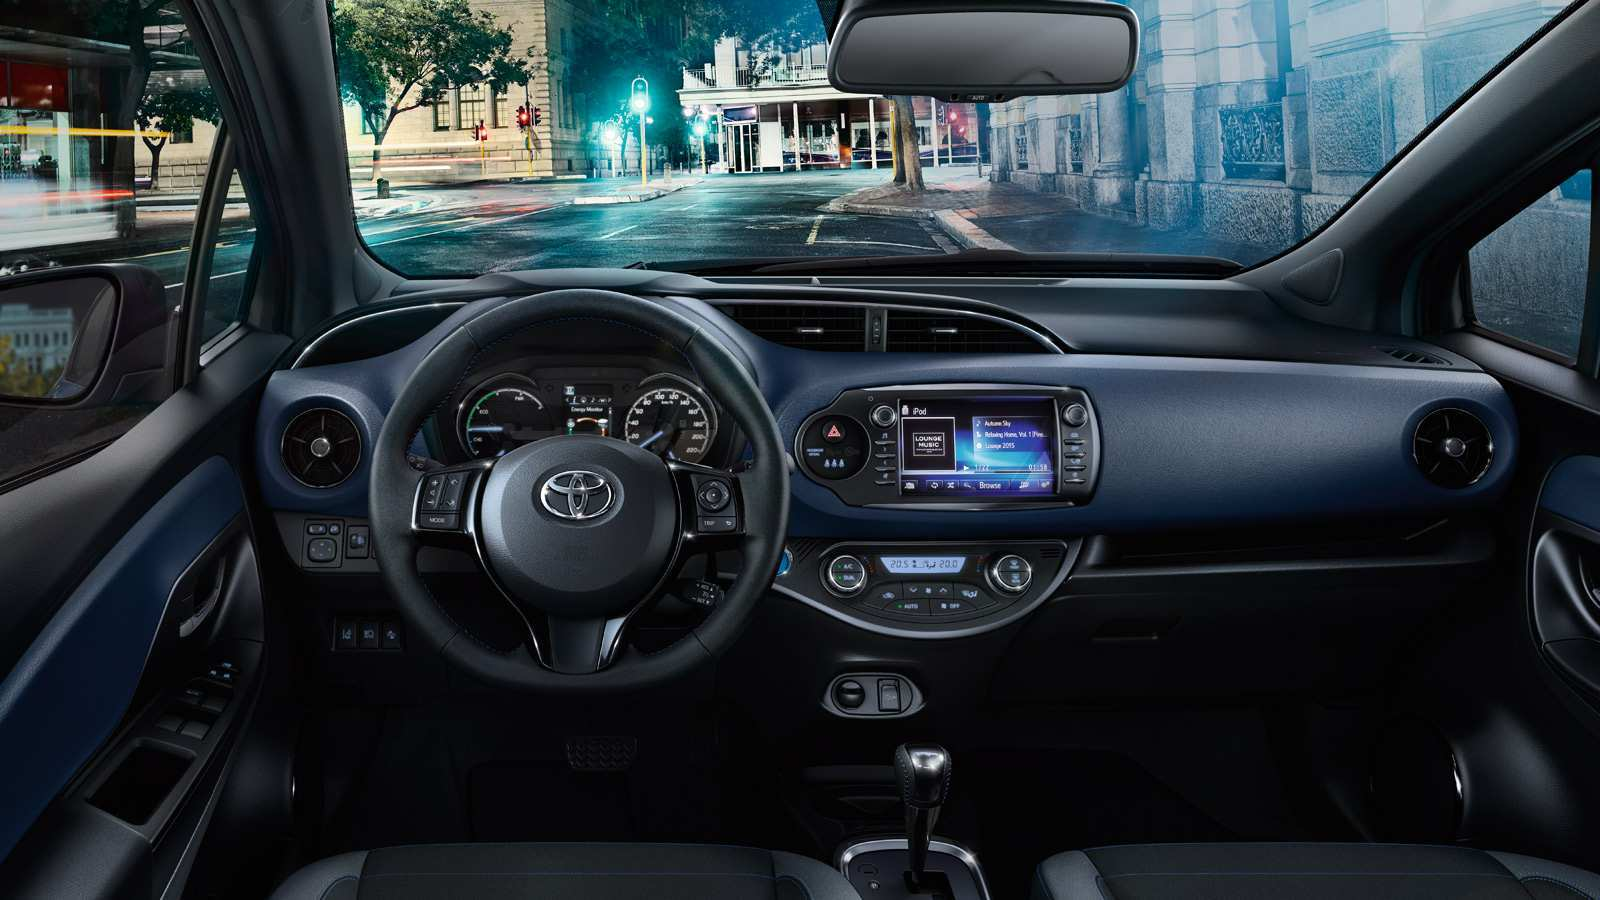 46 Best Toyota Yaris 2019 Europe Picture